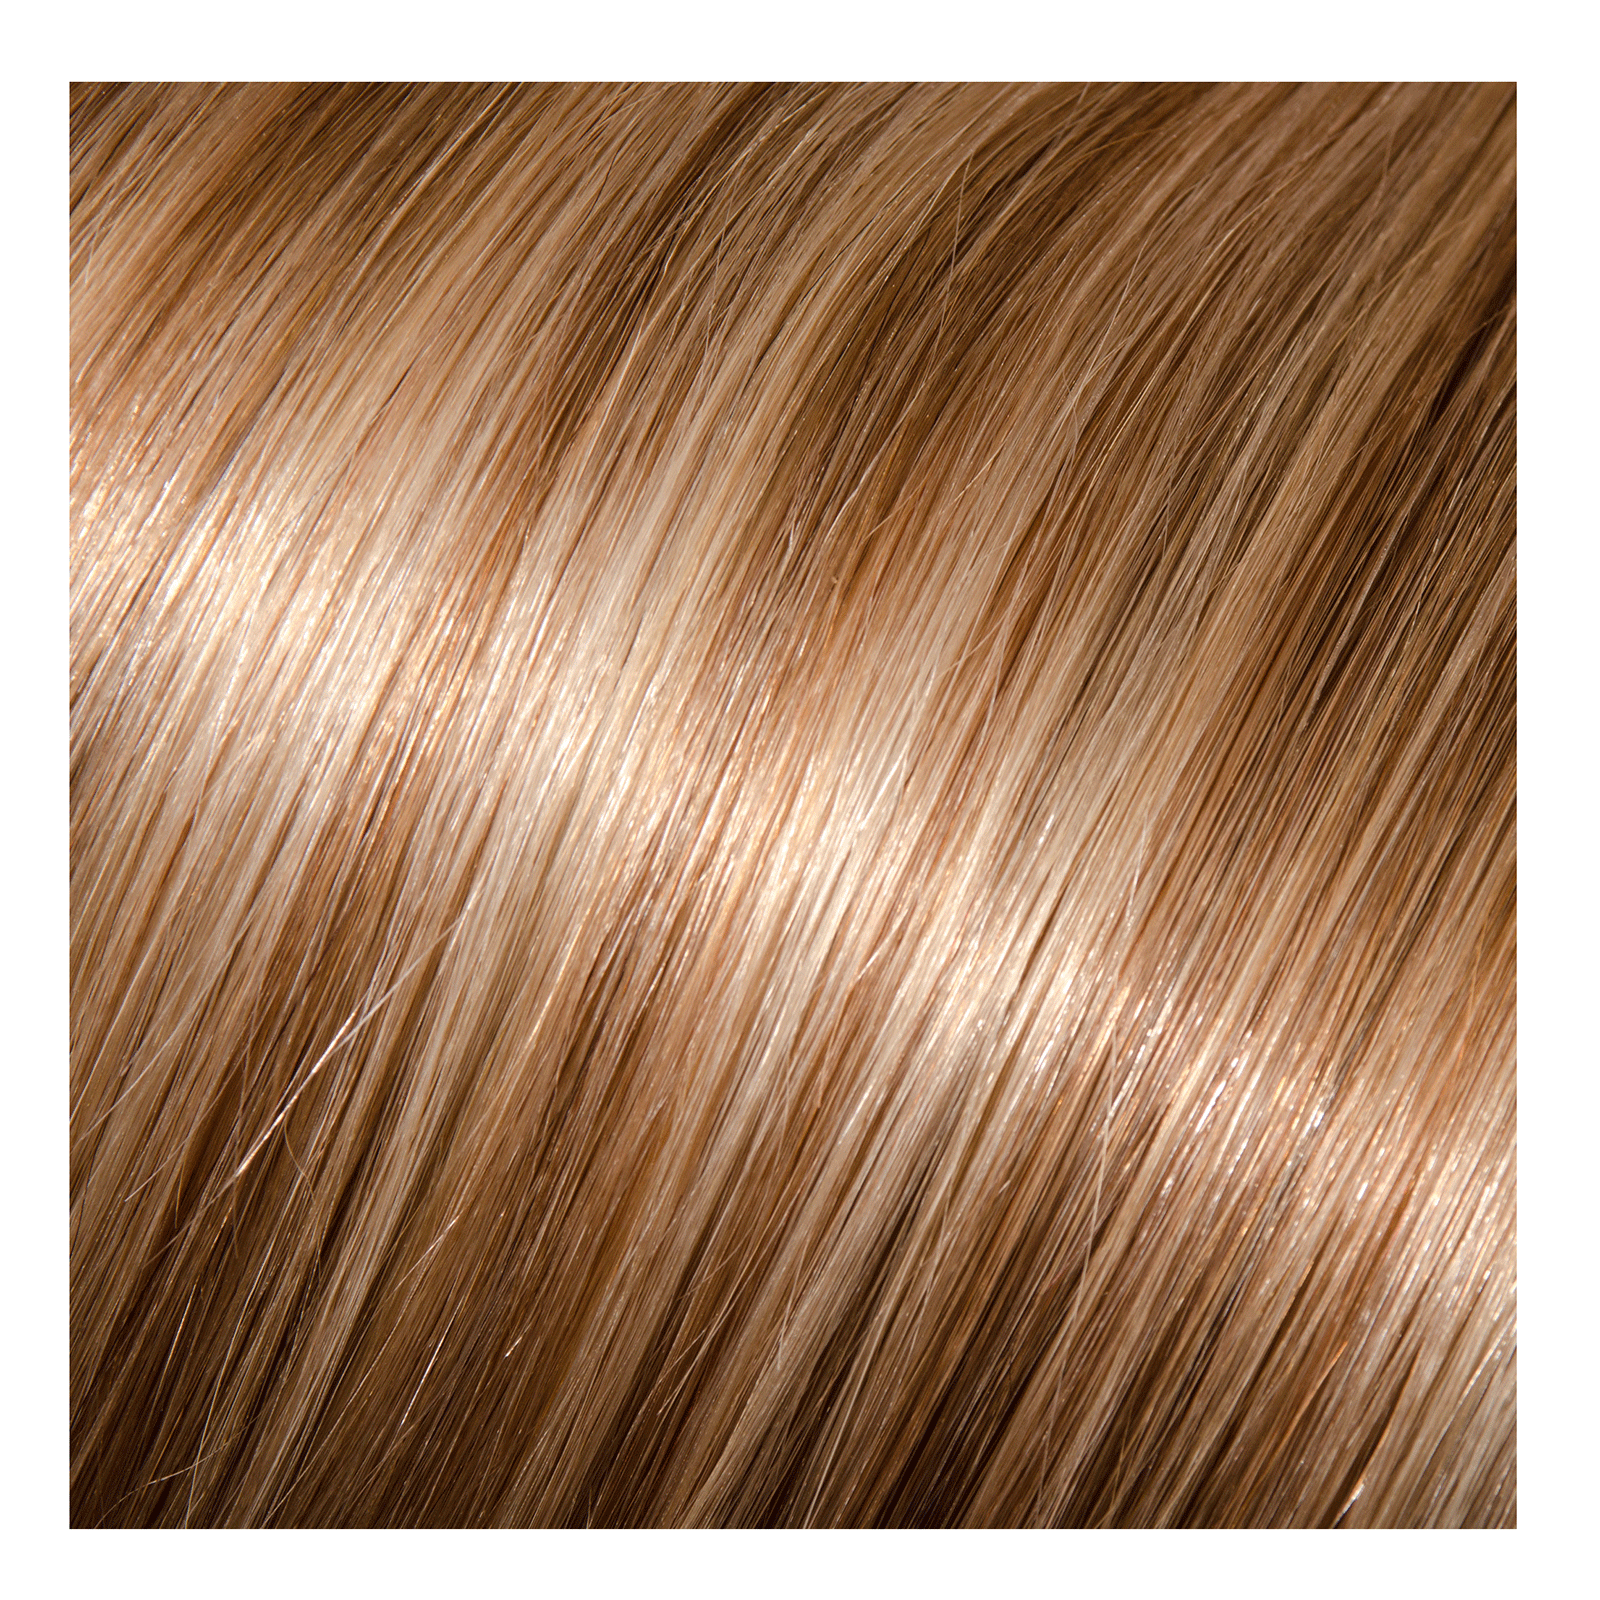 Tape In Pro Hair Extension 14 Inch 12600 Caroline Babe Hair